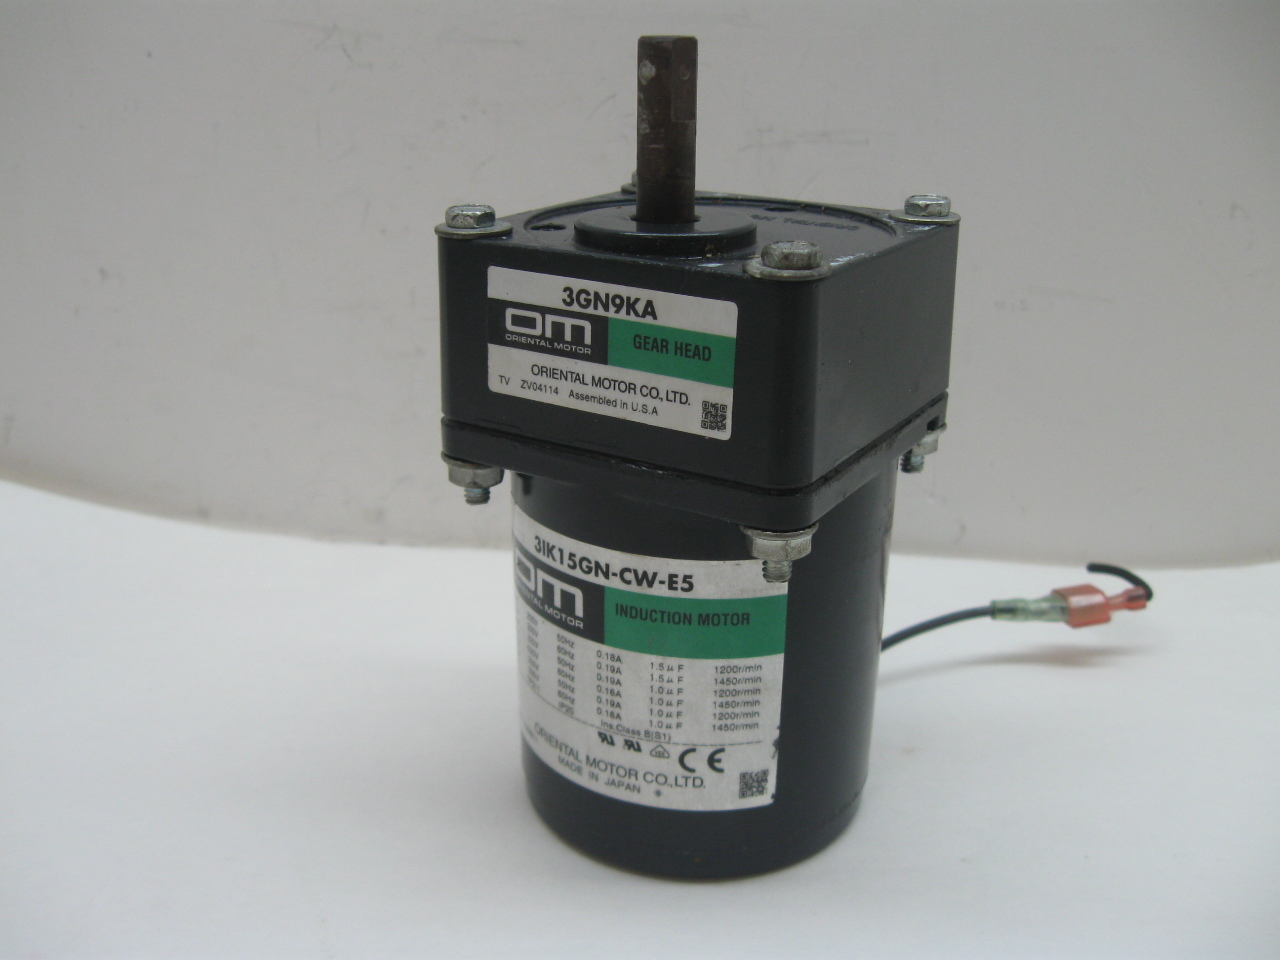 Oriental Motor 3ik15gn Cw E5 Induction Motor With 3gn9ka